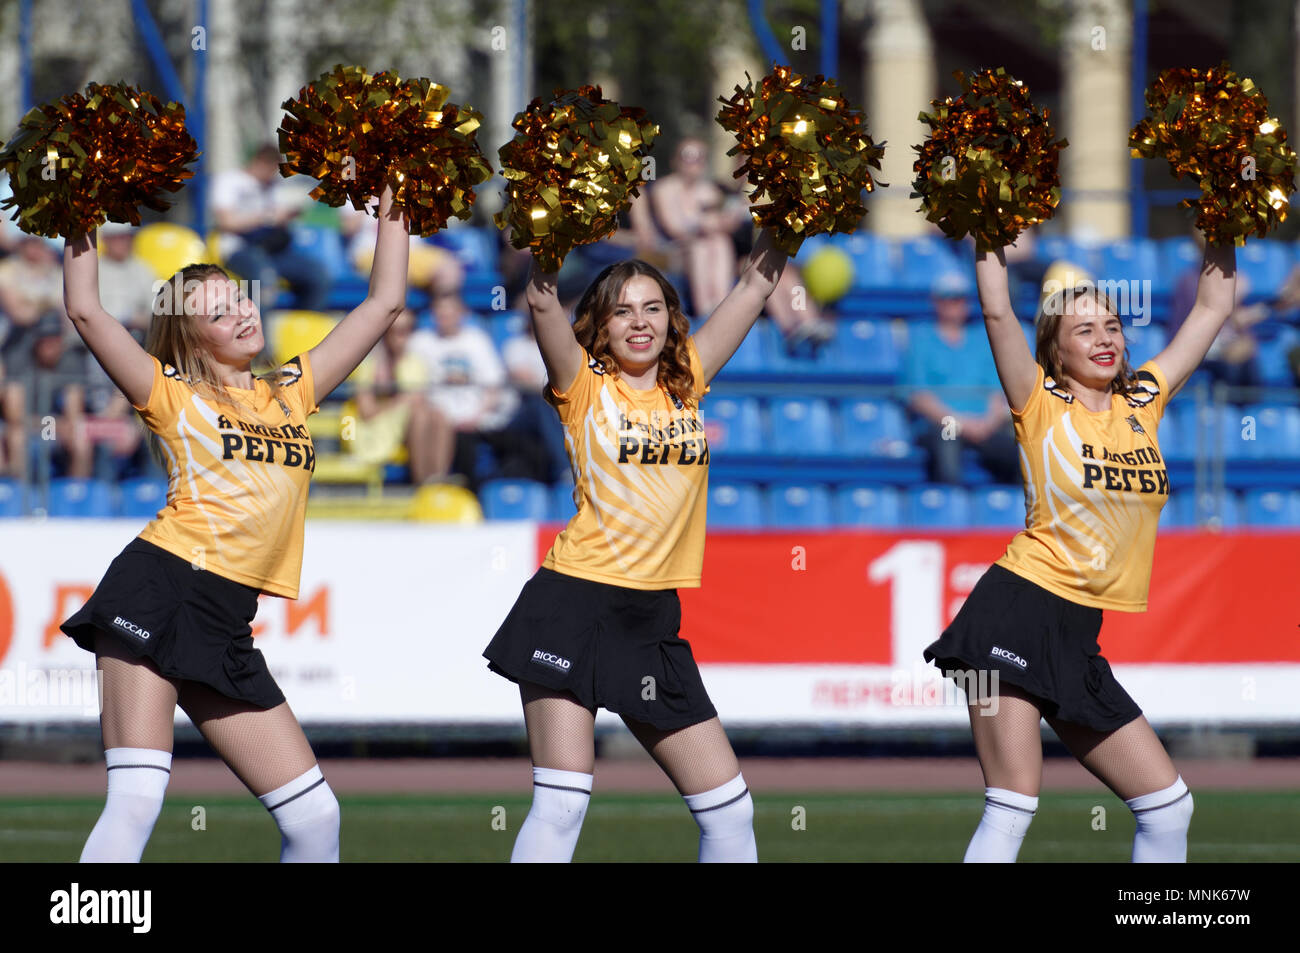 St. Petersburg, Russia - May 12, 2018: Cheer-dance group in action before the match Narvskaya Zastava, Russia - Busly, Belarus during Rugby Europe Sev - Stock Image